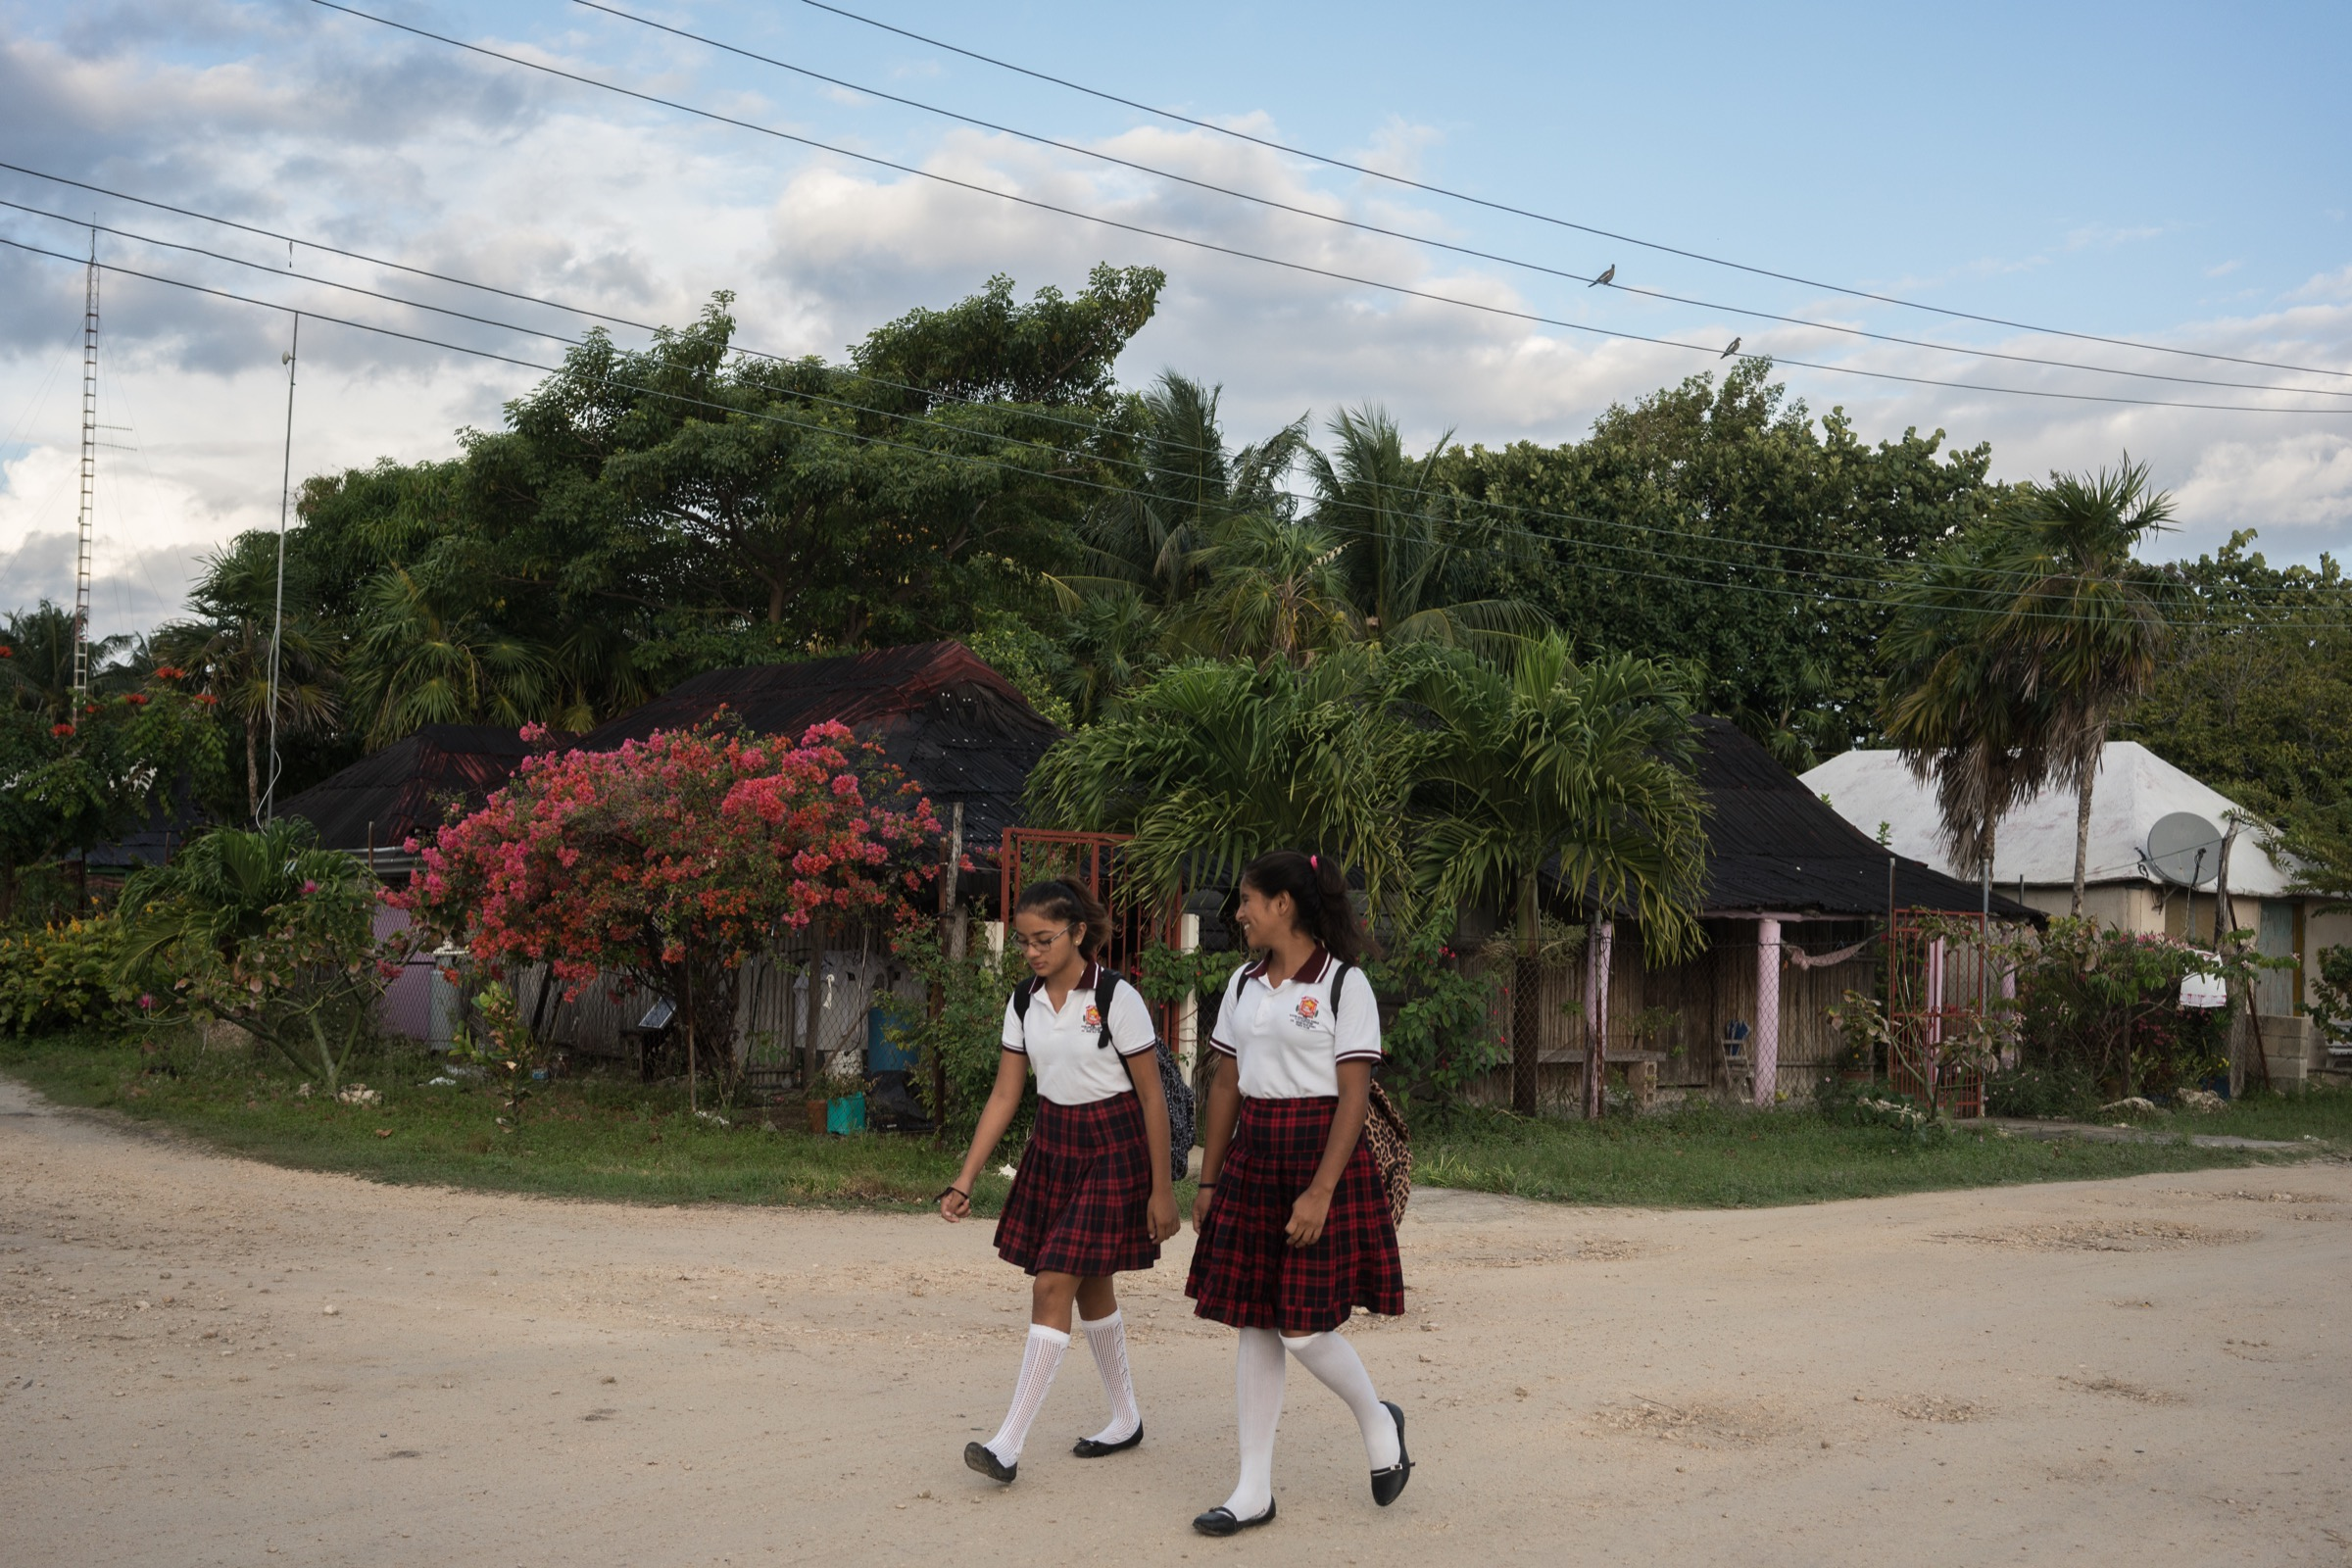 Two girls walk to school in Punta Allen, Mexico, a town that has prospered because of its successful lobster fishery. Photograph by Dominic Bracco II